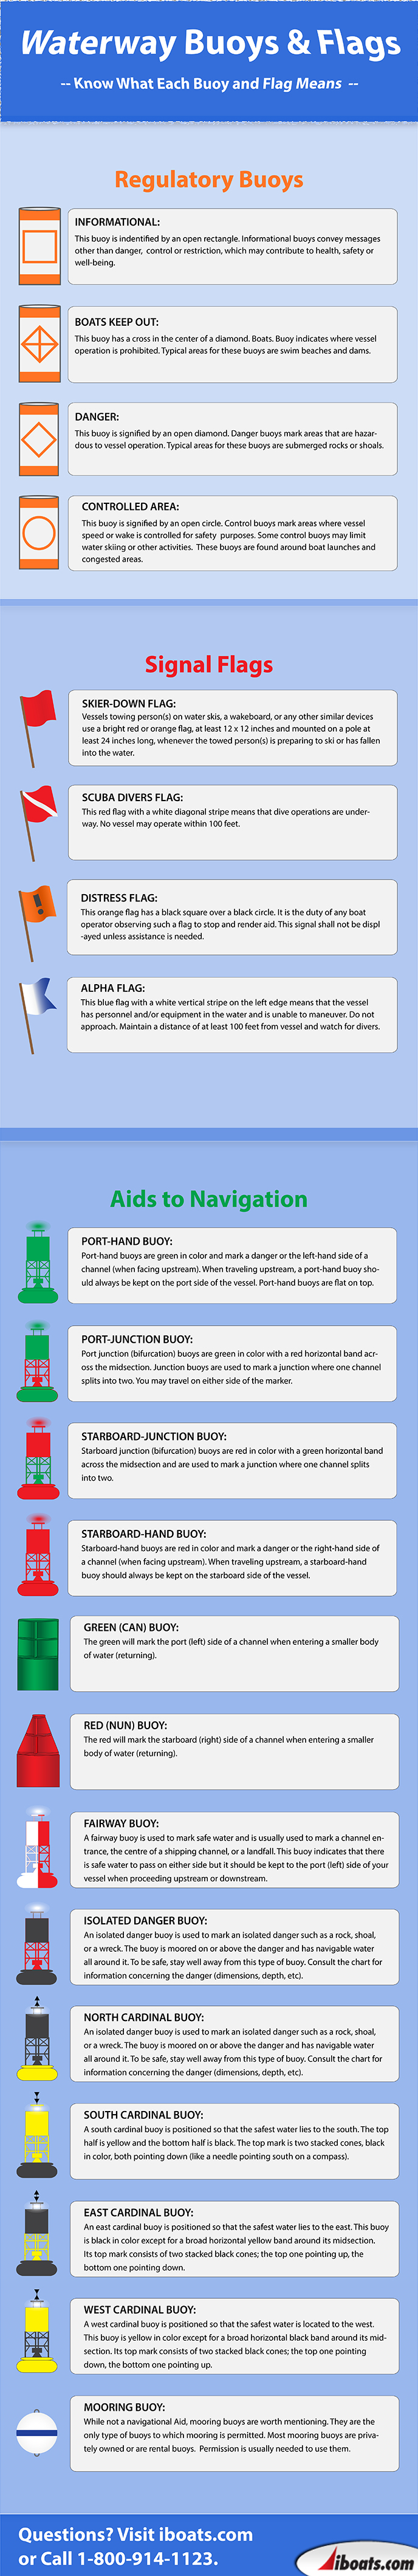 Infographic on Boating Navigational Buoys and Markers